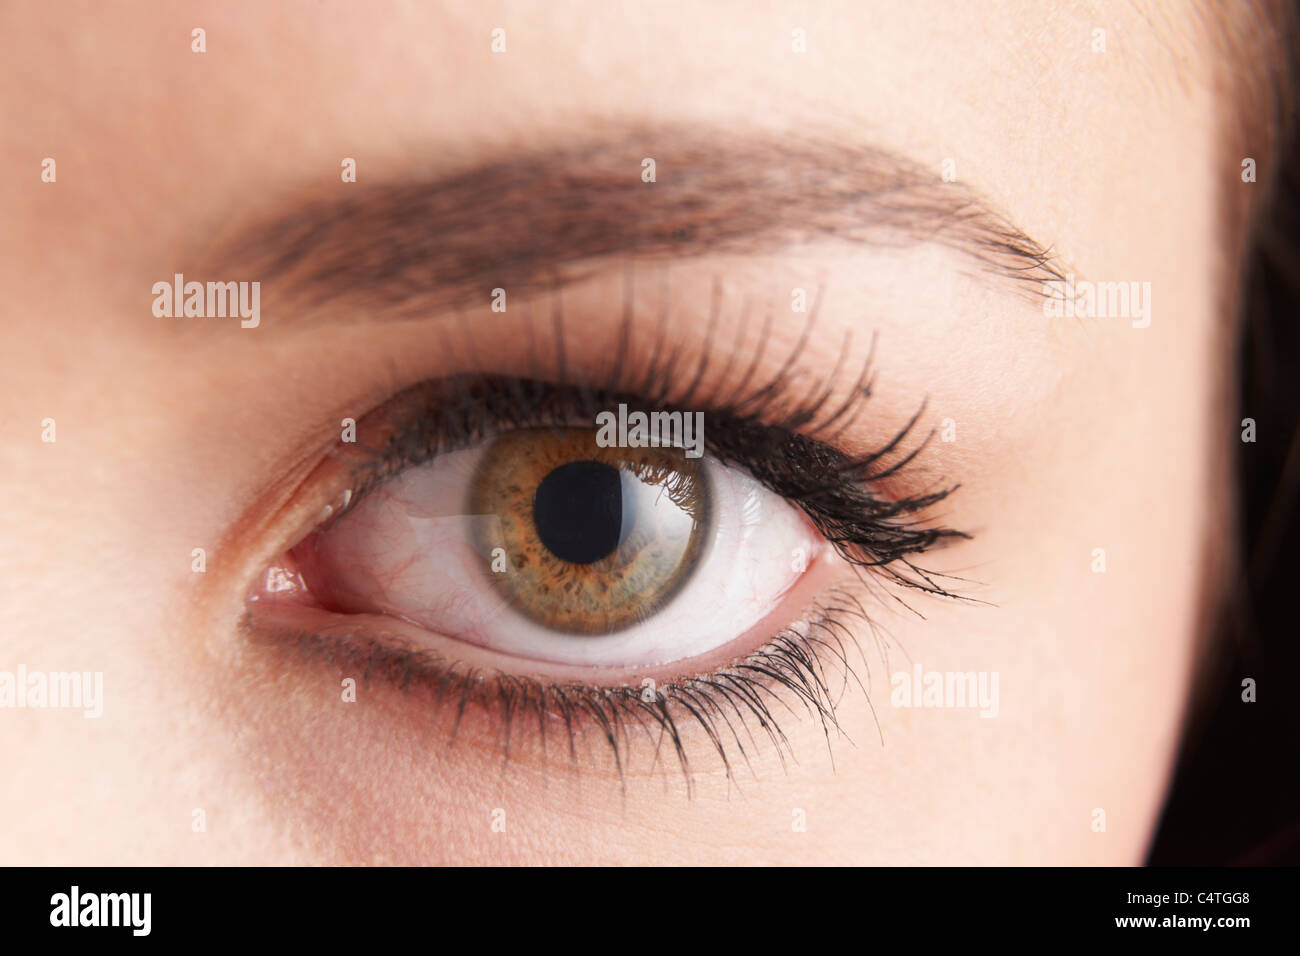 close up of womans brown eye with false eye lashes - Stock Image